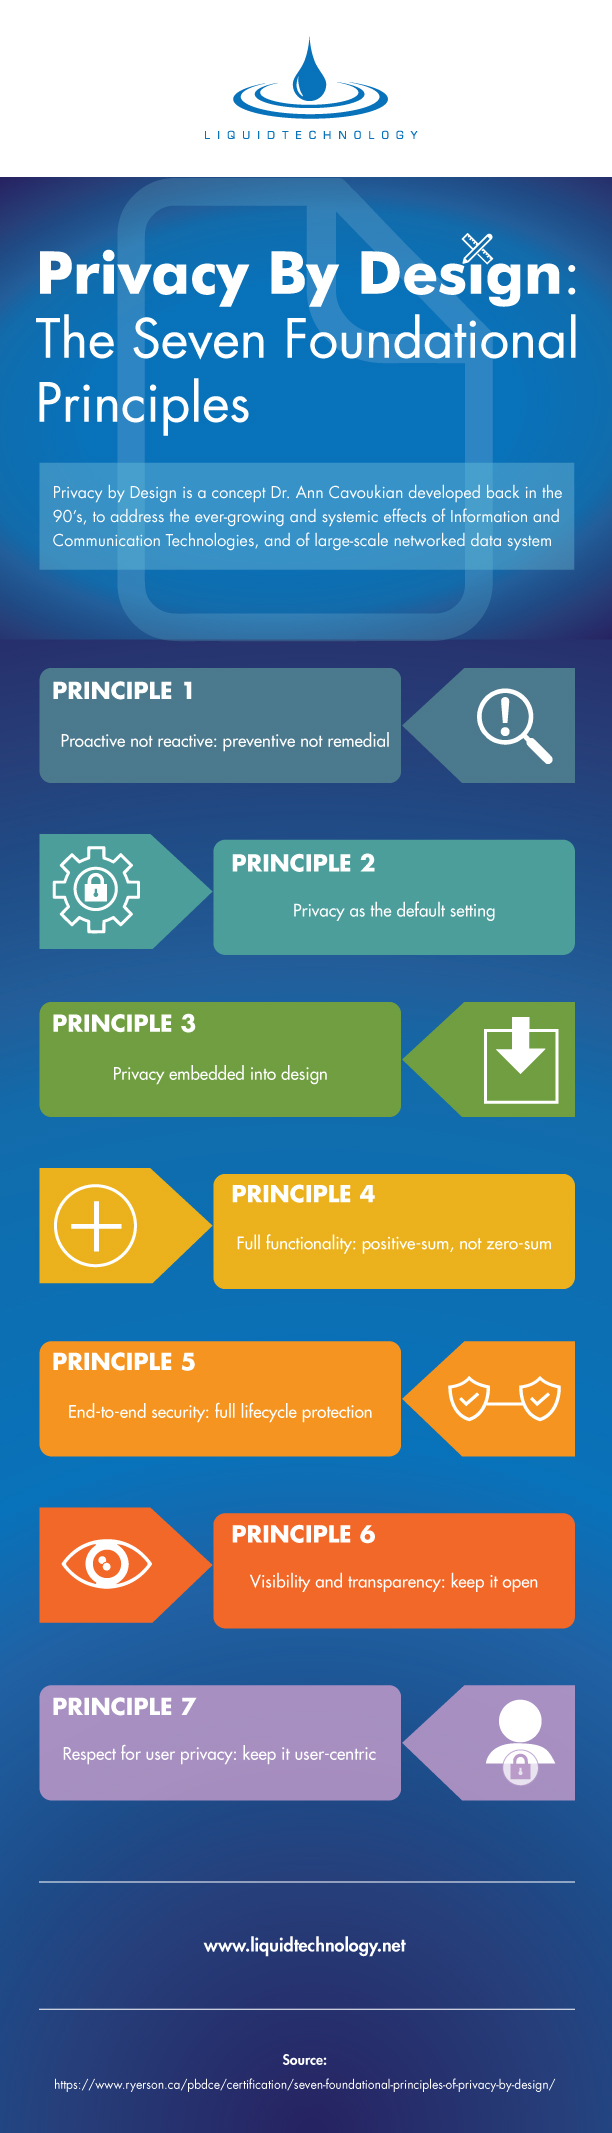 Infographic of the Seven Foundational Principles of Privacy By Design